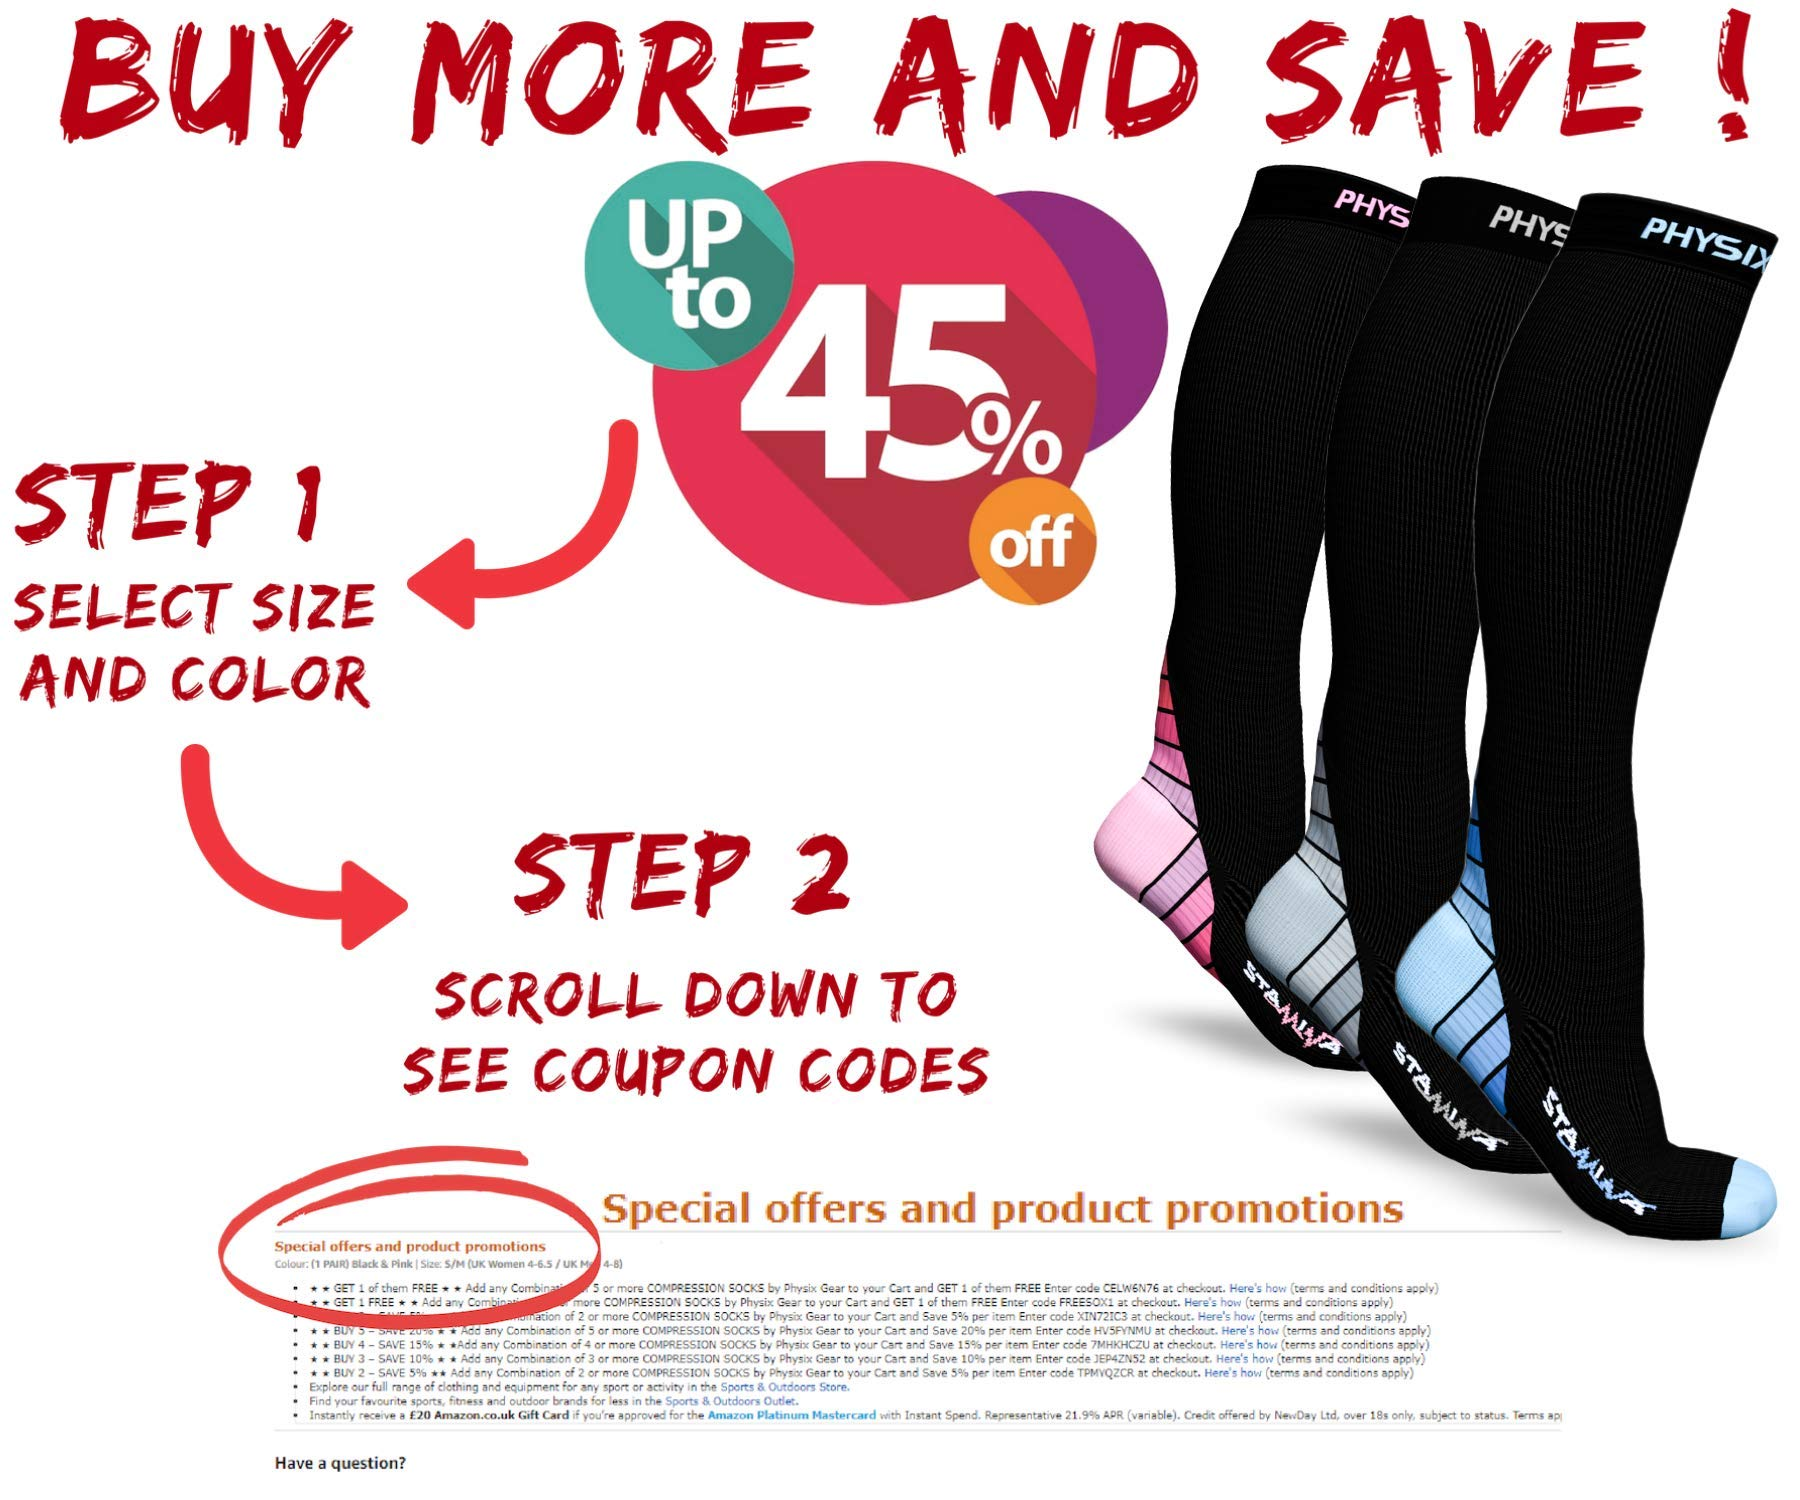 3 Pack Compression Socks for Men & Women 20-30 mmhg, Best Graduated Athletic Fit for Running Nurses Shin Splints Flight Travel & Maternity Pregnancy - Boost Stamina Circulation & Recovery BLU LXL by Physix Gear Sport (Image #8)